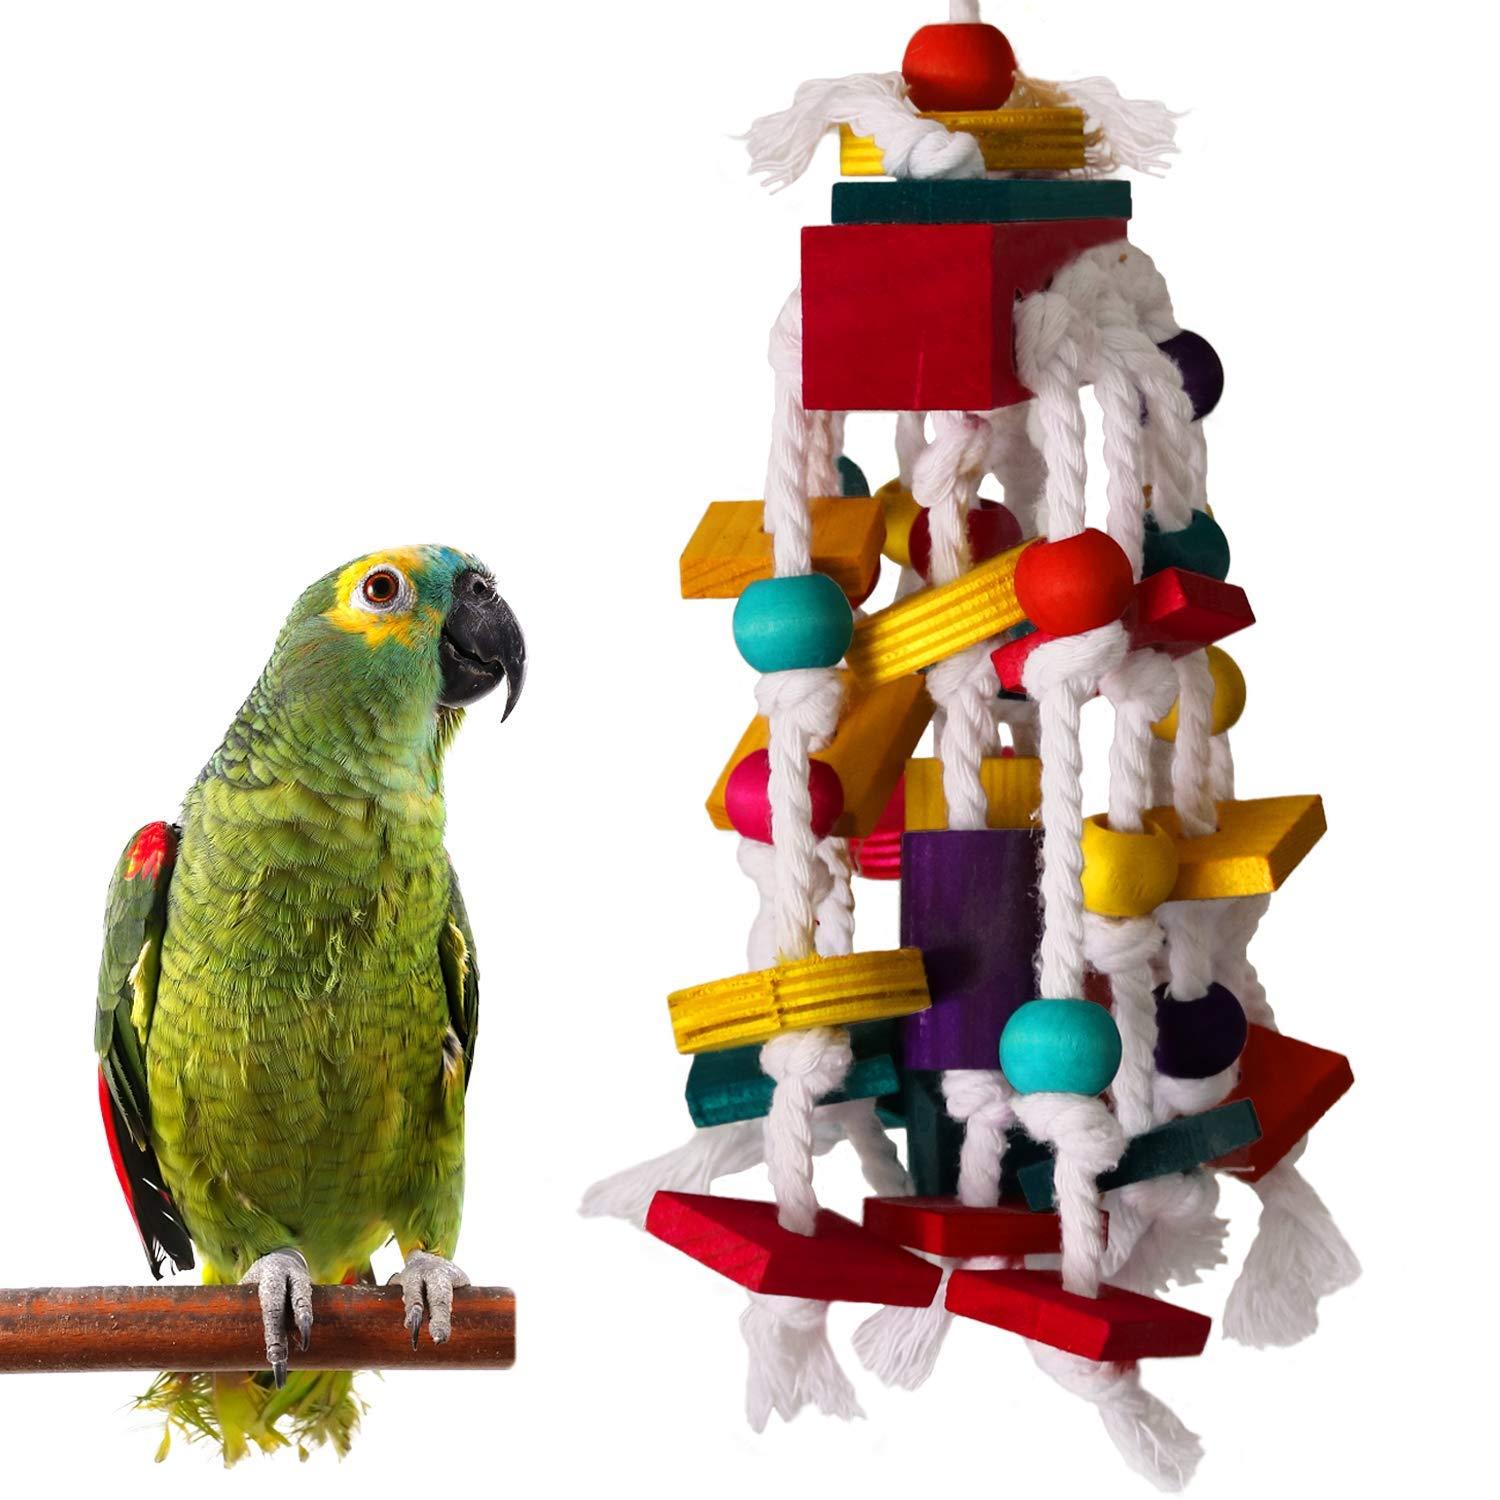 RYPET Bird Chewing Toy - Parrot Cage Bite Toys Wooden Block Bird Parrot Toys for Small and Medium Parrots and Birds by RYPET